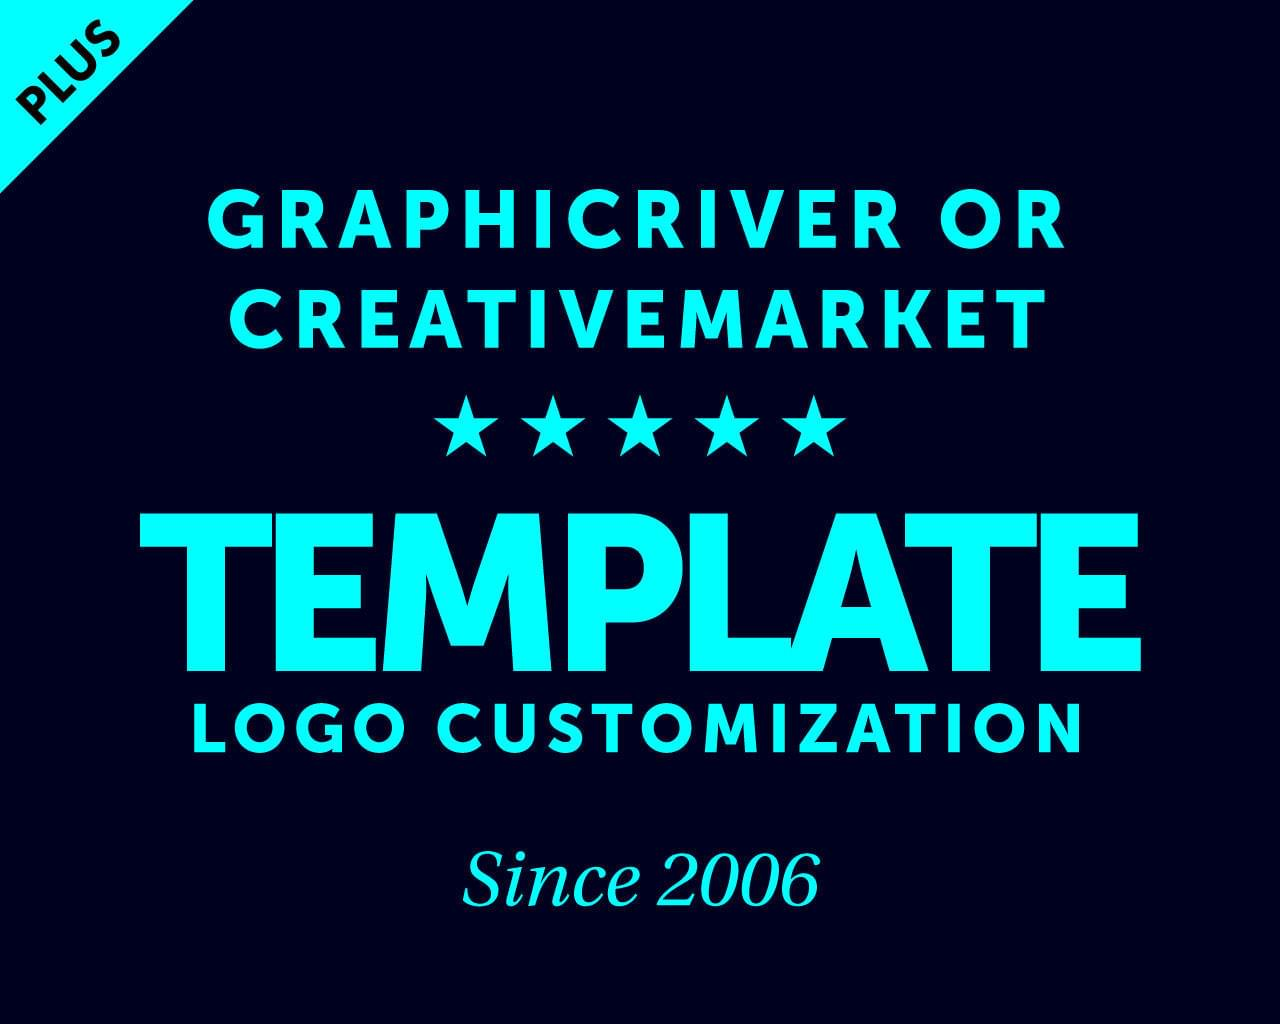 Logo Template Customization, Logo Service (GraphicRiver, Creative Market or others...) by AnasProStudio - 116651